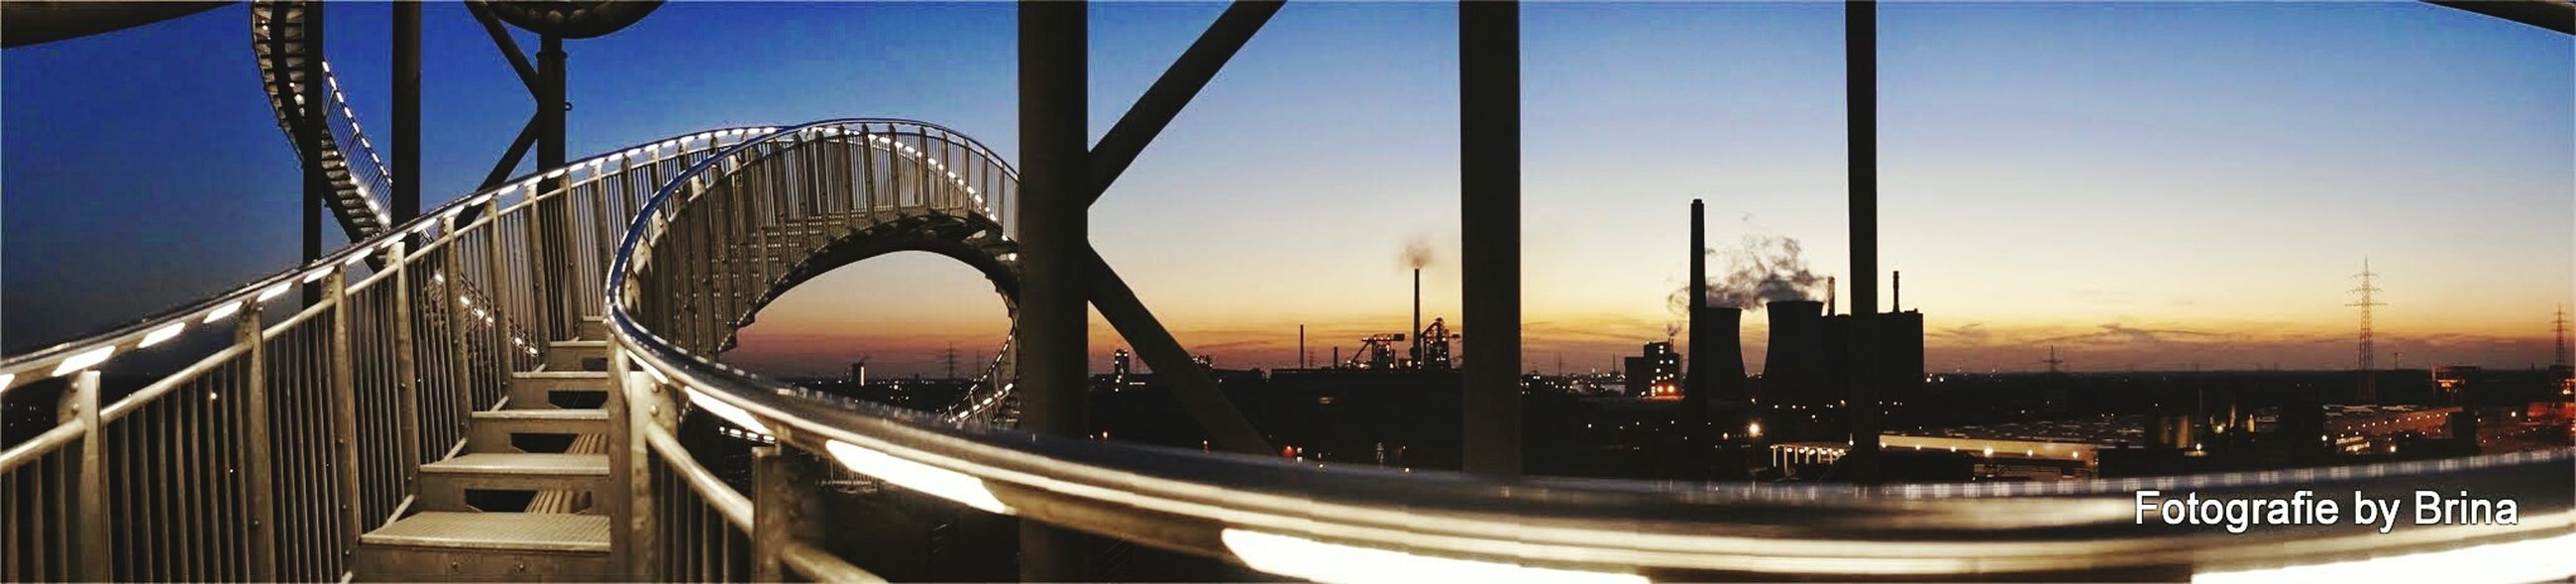 My Country In A Photo Tiger & Turtle Roller Coaster Angerbach | Duisburg Industry Stairways Panorama Amazing Architecture Capturing Freedom / A beautiful scene about modern architecture and industry Beauty Redefined